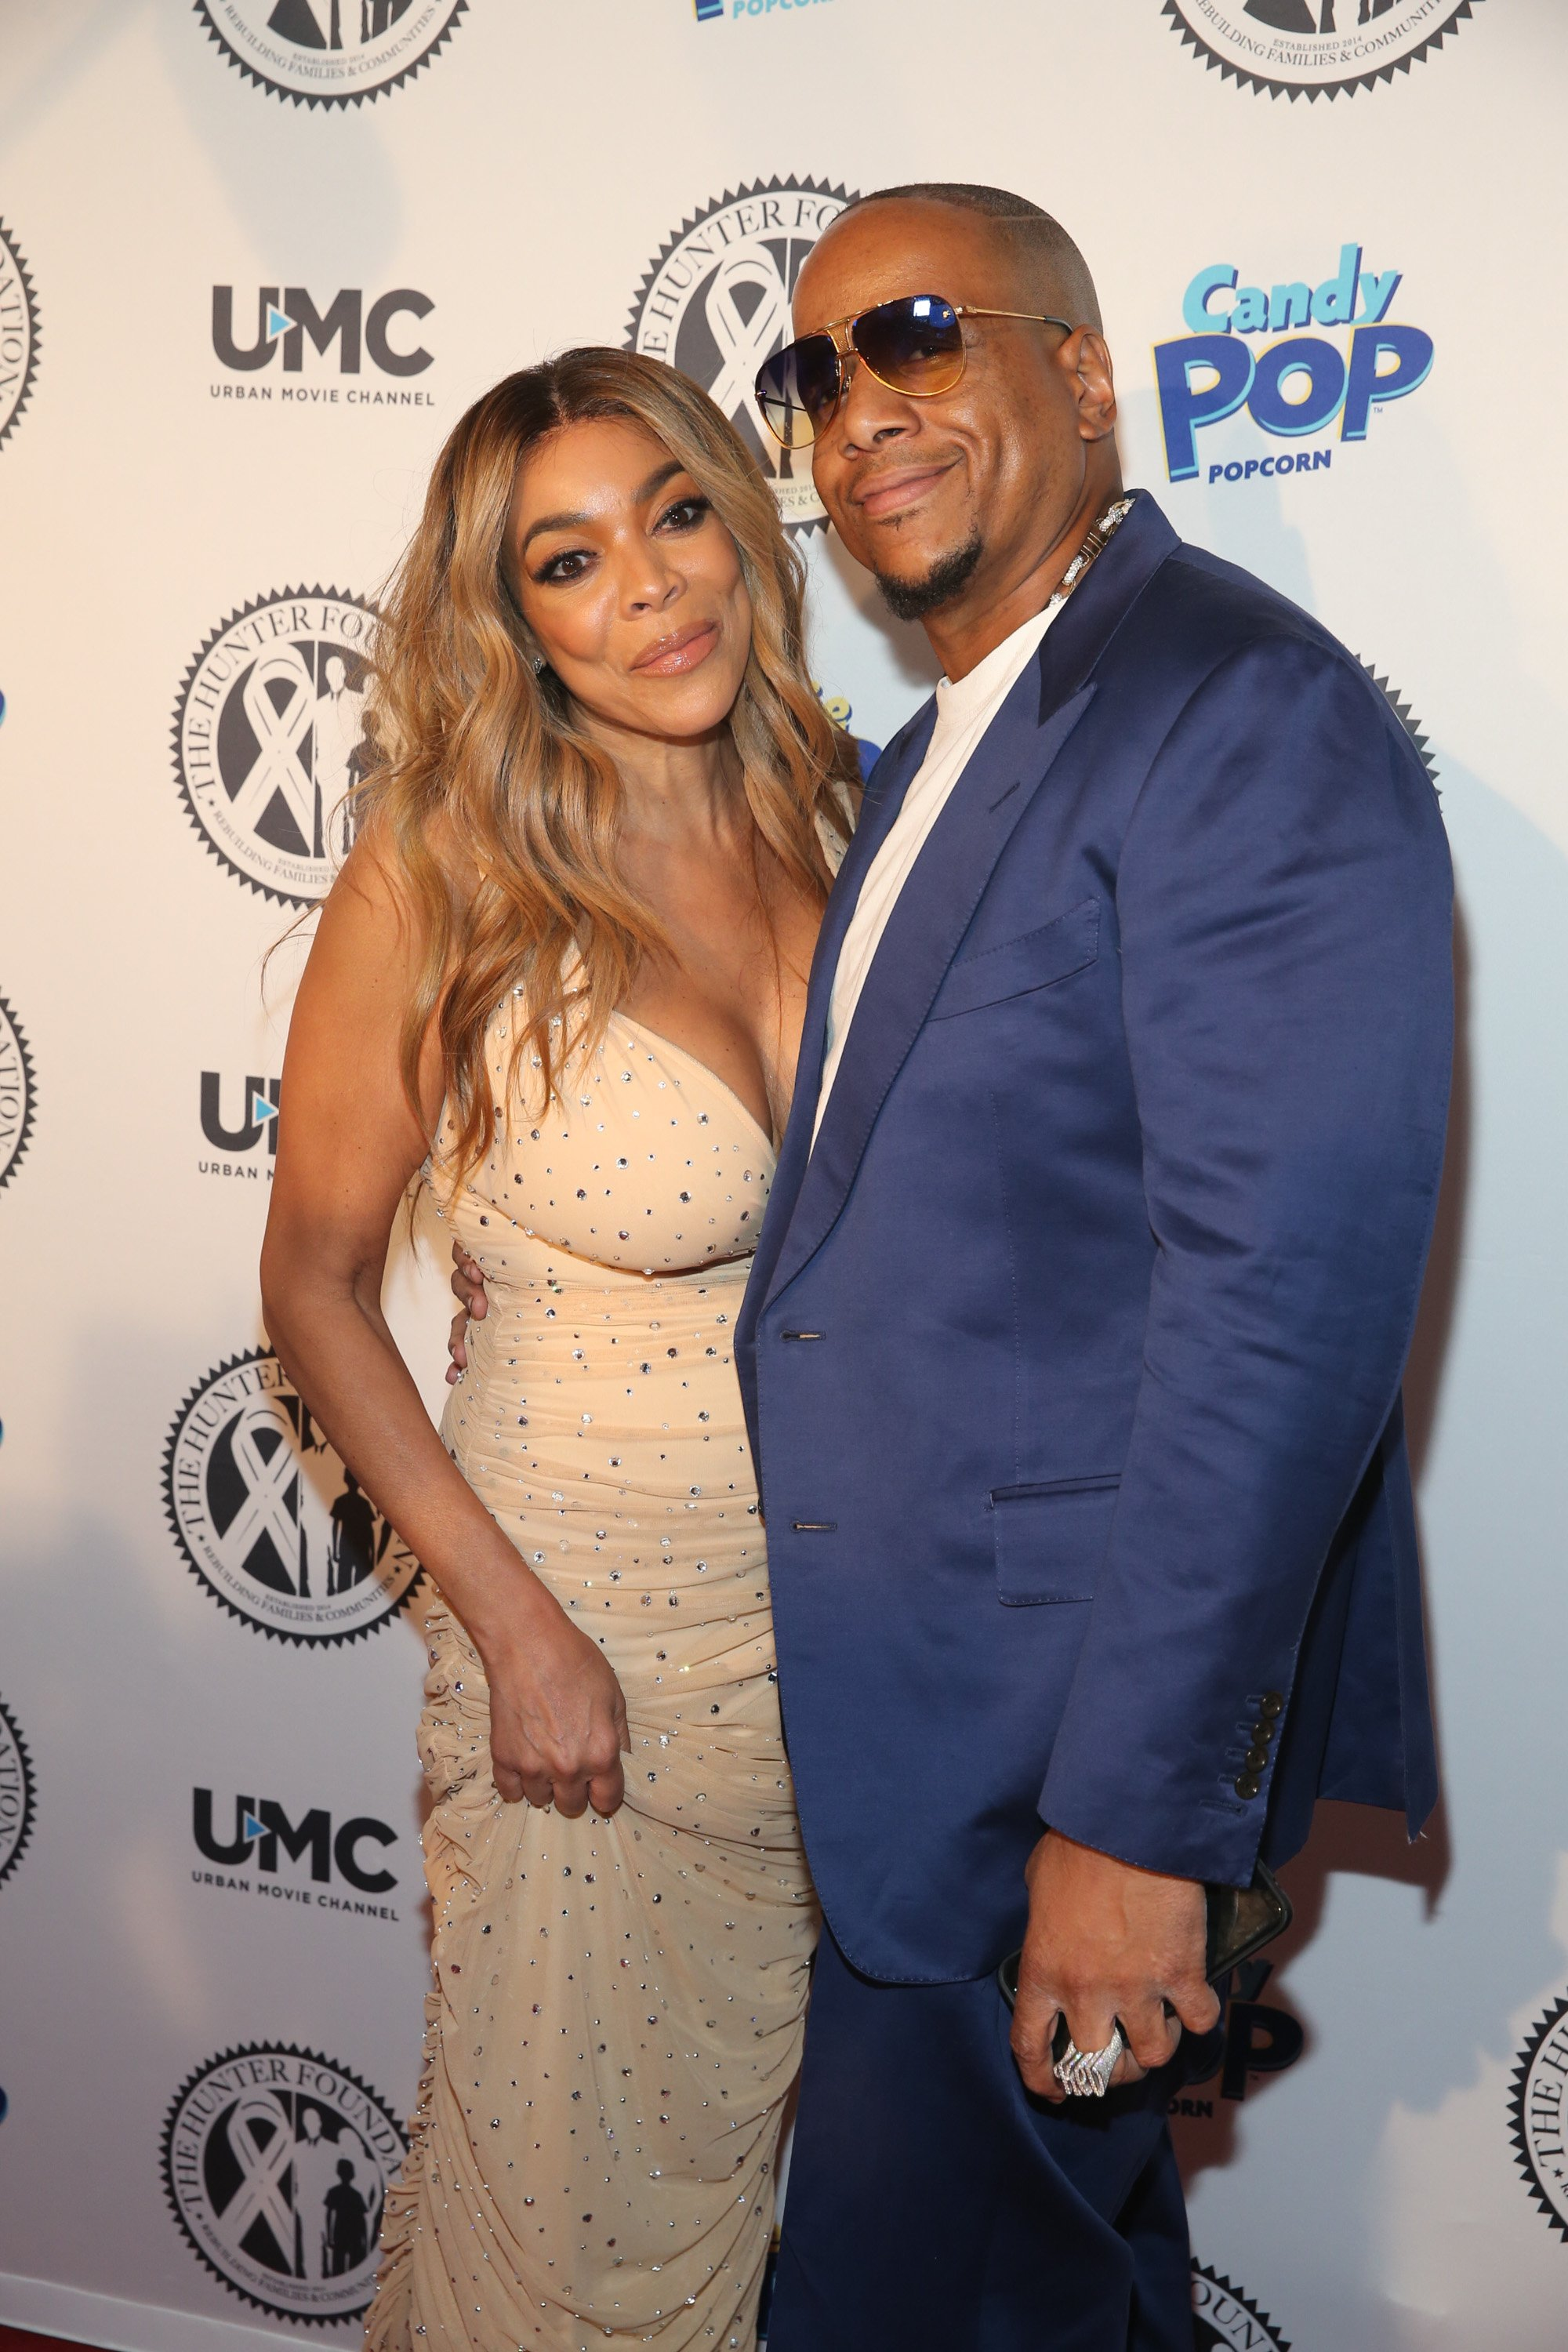 Wendy Williams and Kevin Hunter attending The Hunter Foundation gala in July 2018. | Photo: Getty Images